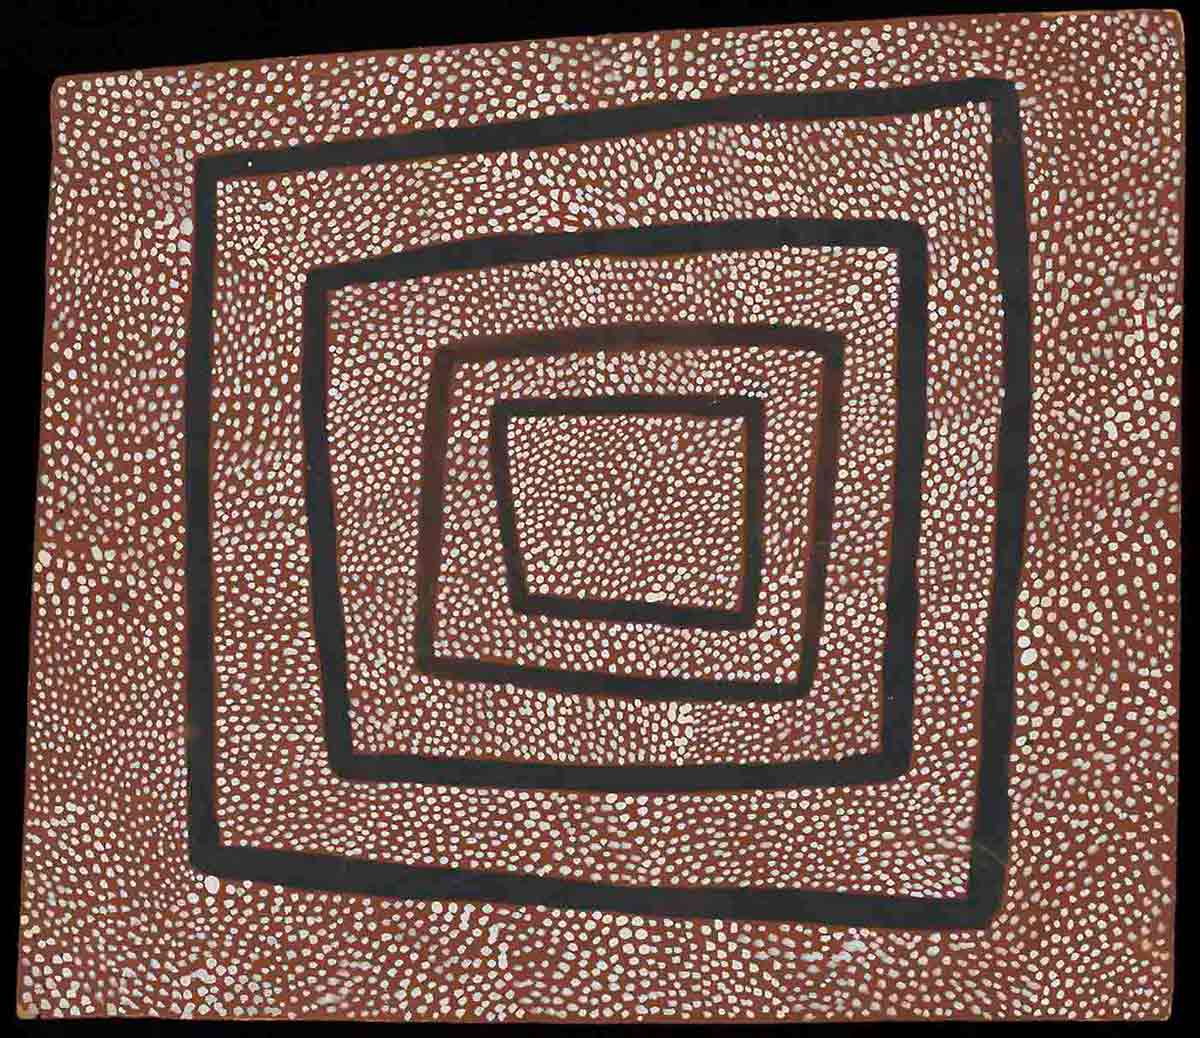 A painting of white dots on a brown surface, with four black irregular-shaped squares extending from the centre. - click to view larger image